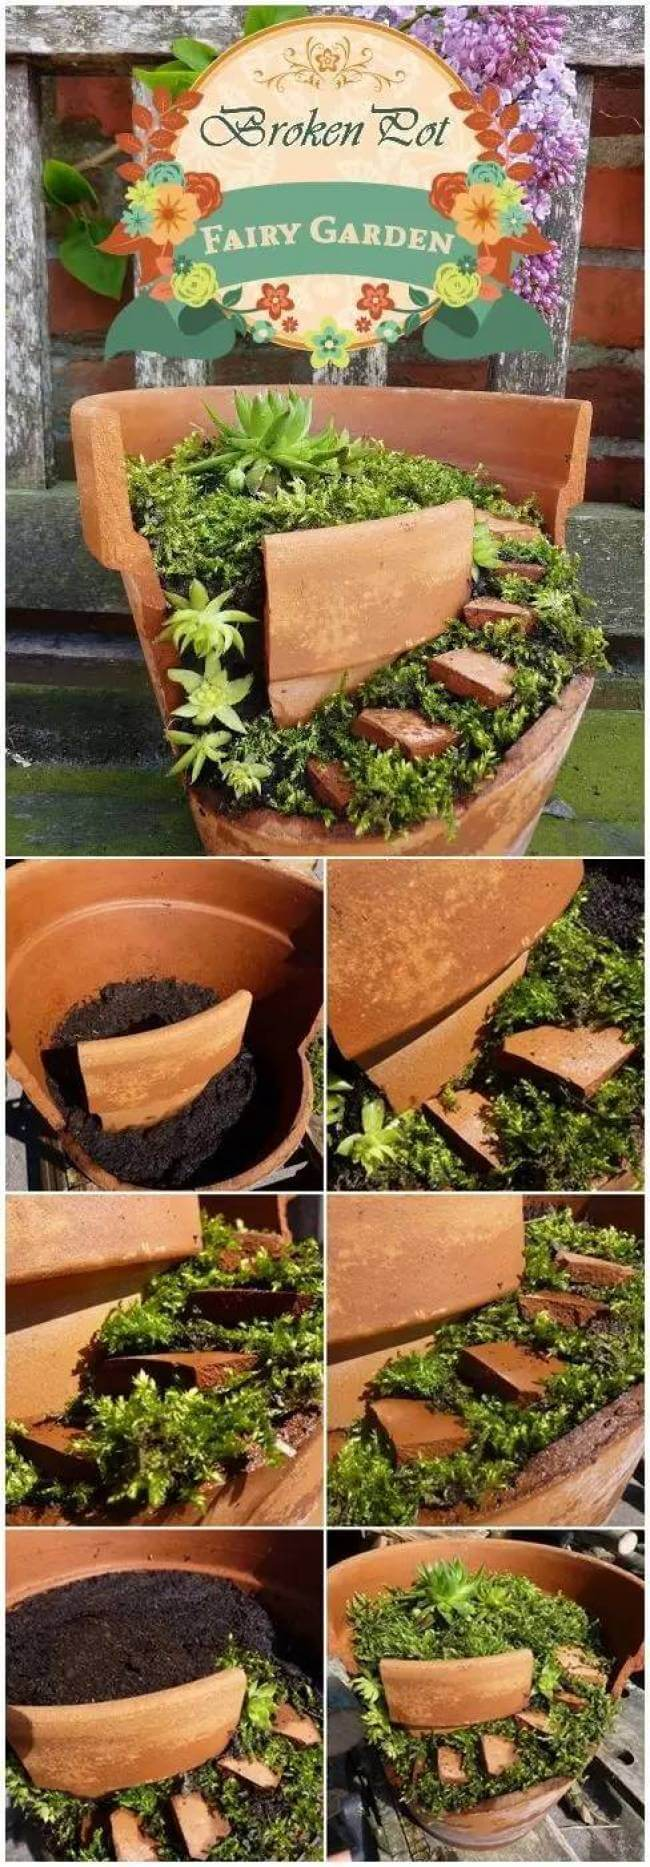 Repurposed Potted Fairy Garden | fairy garden accessories | miniture fairy garden ideas inspiration | homemade fairy garden decorations